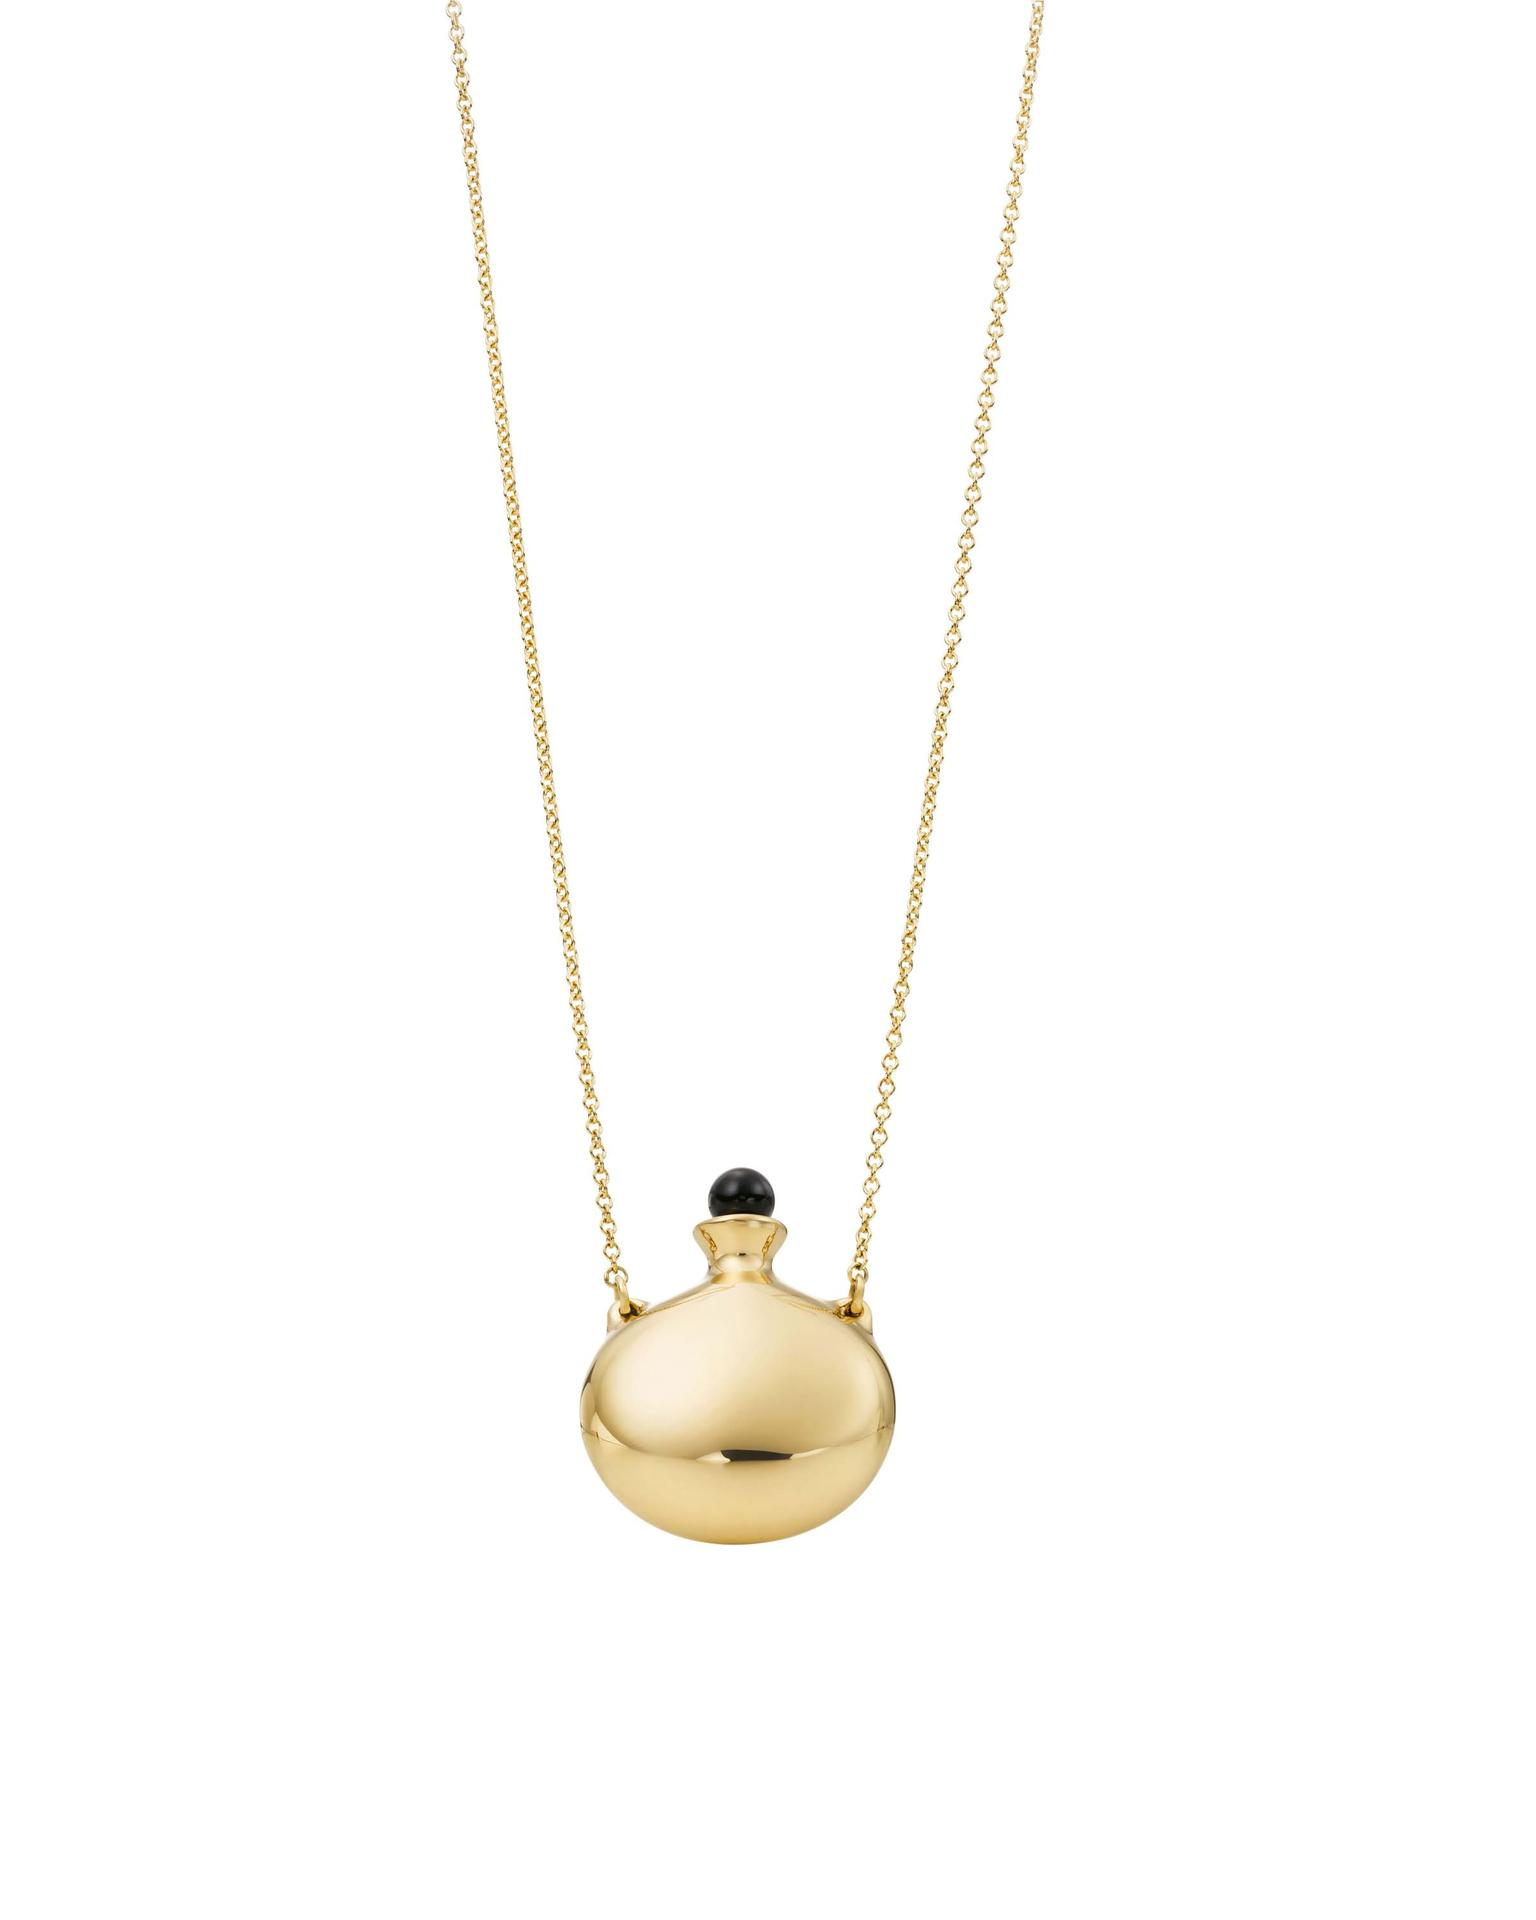 Elsa Peretti for Tiffany Bottle pendant in yellow gold with a removable lapis lazuli stopper from £3,000.